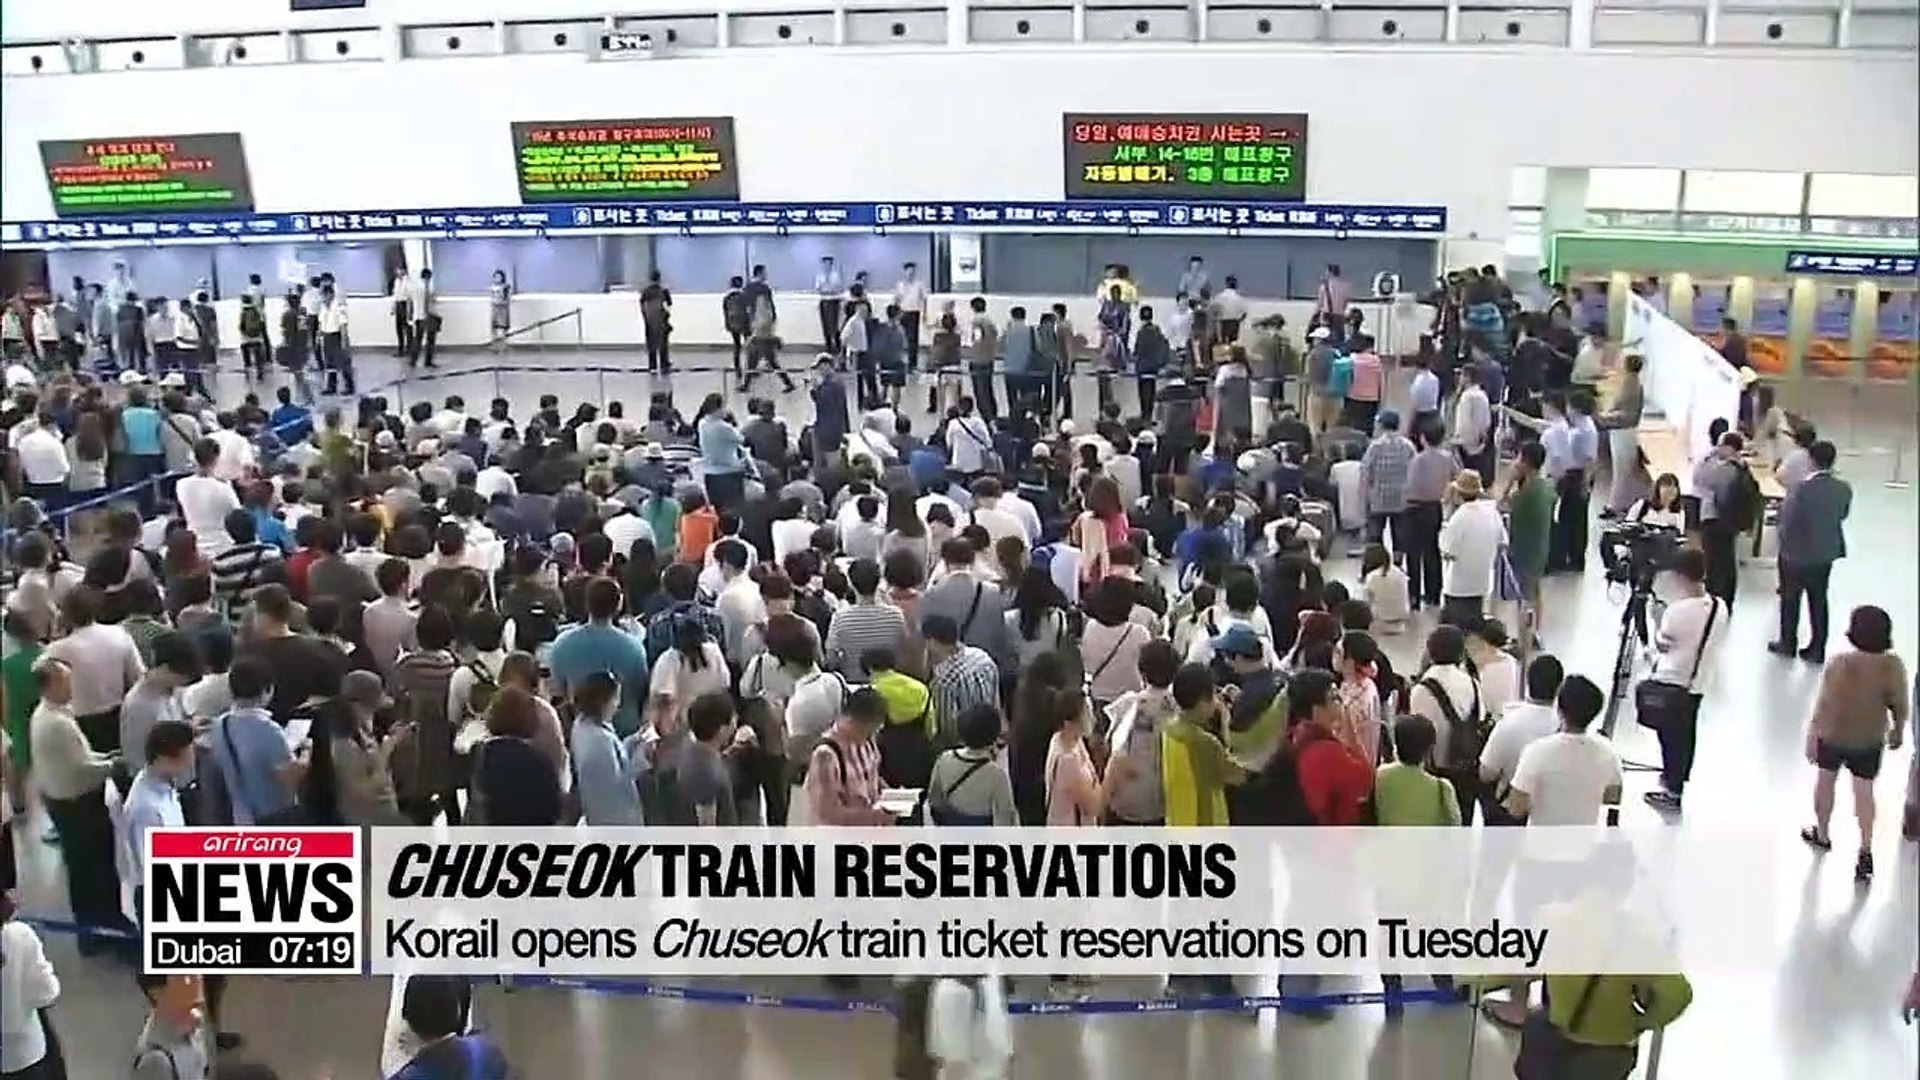 Train ticket reservations for this year's Chuseok holiday, known as Korean  thanksgiving, begins today  Korail says the tickets can be booked through  its website as well as in-person at train stations